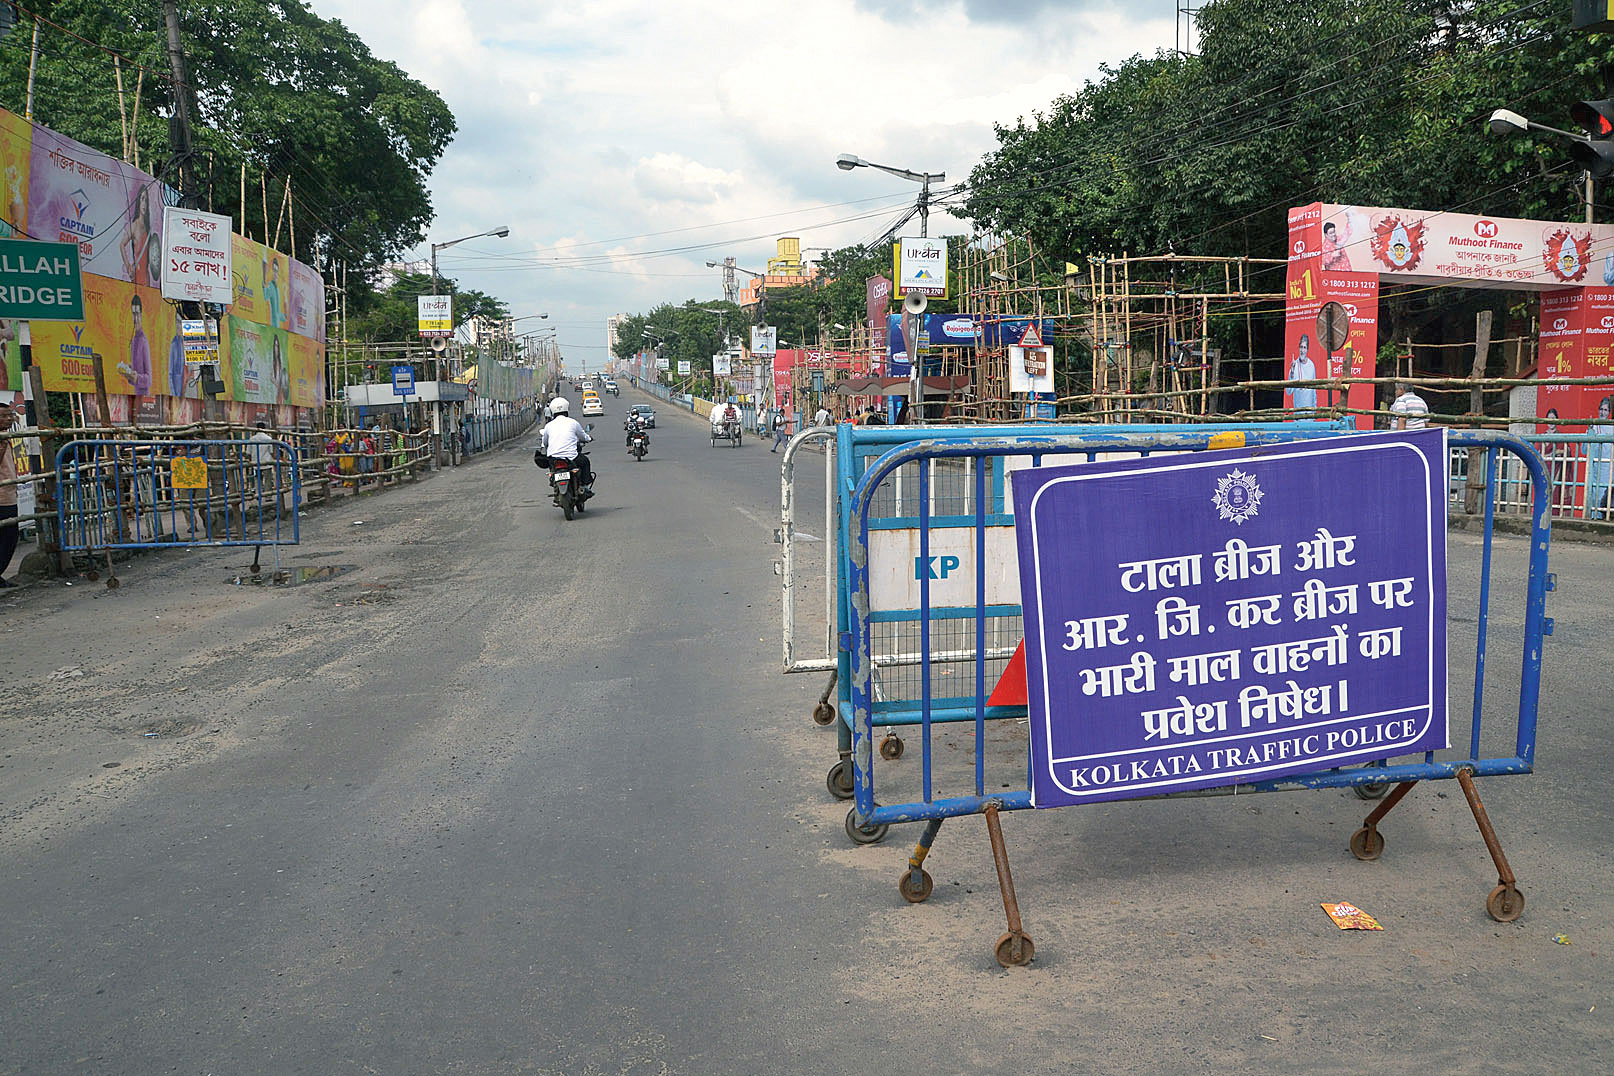 A signboard near the Tallah bridge reads heavy vehicles are not allowed